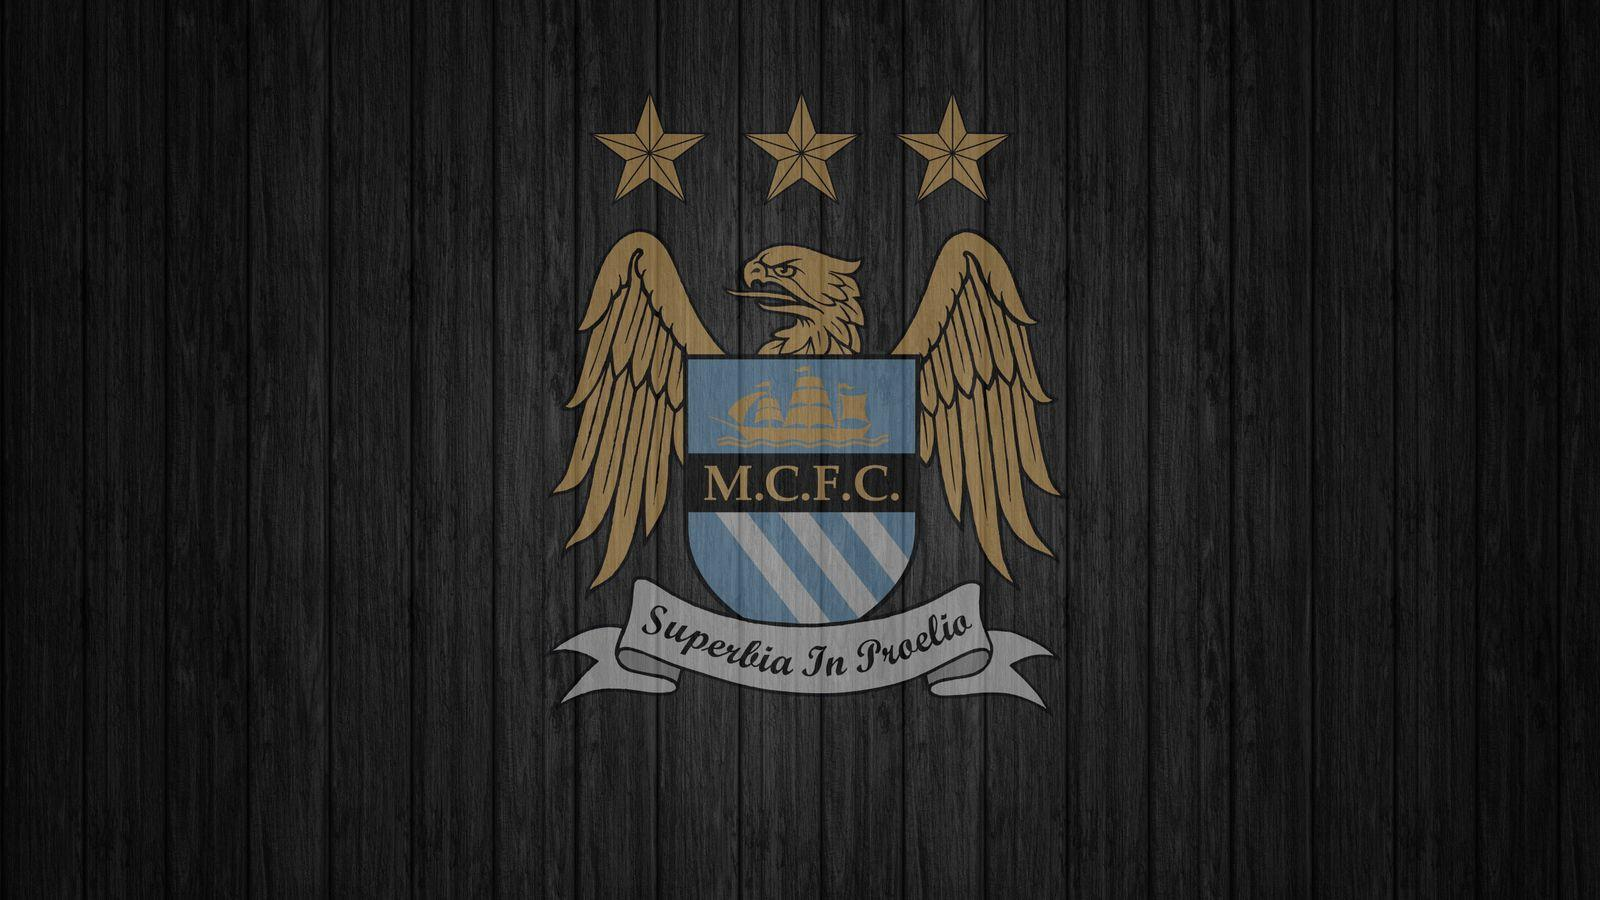 Manchester City Logos Wallpapers - Wallpaper Cave